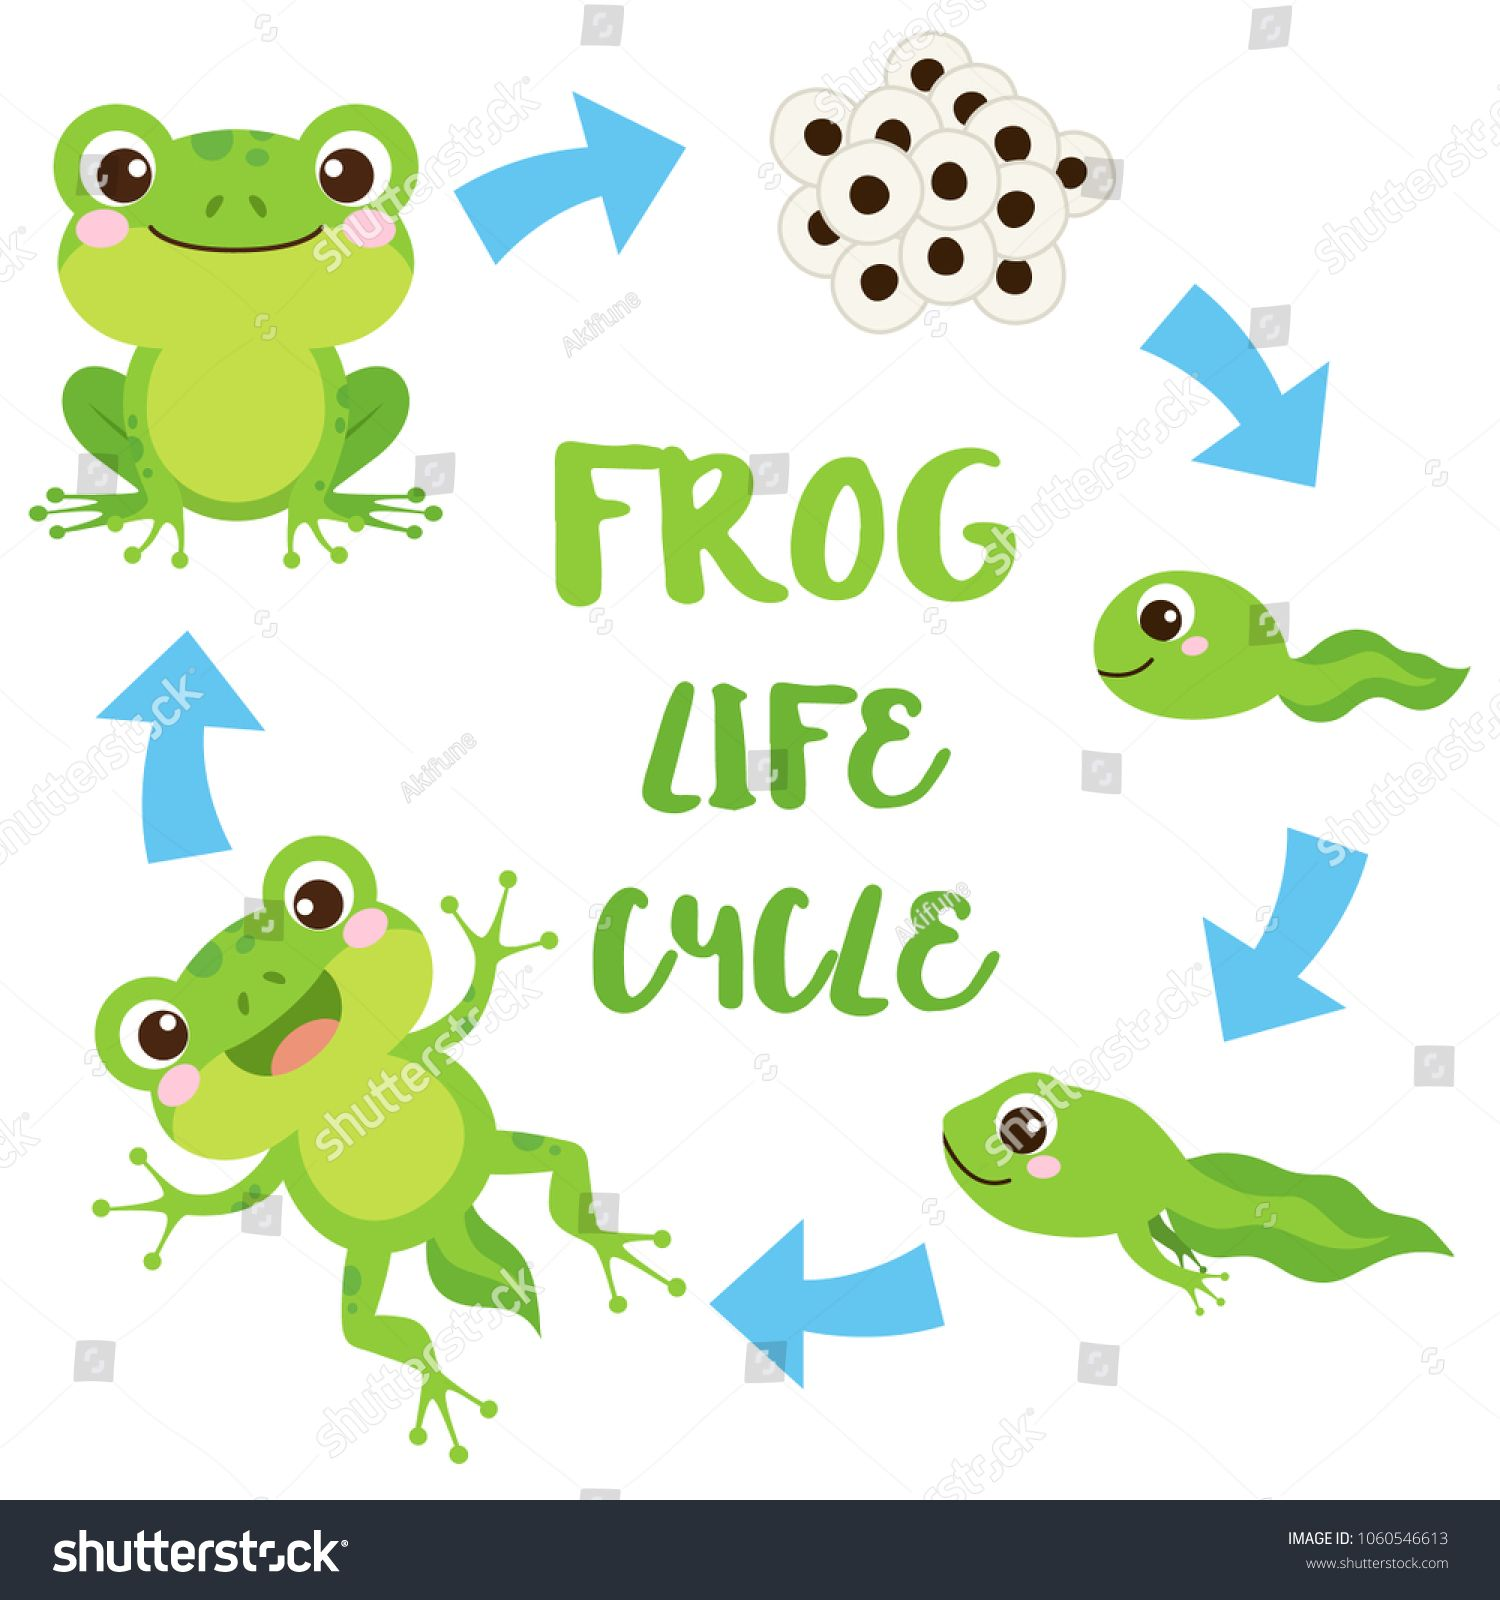 Life Cycle Of A Frog Cute Cartoon Wild Animal Egg Masses